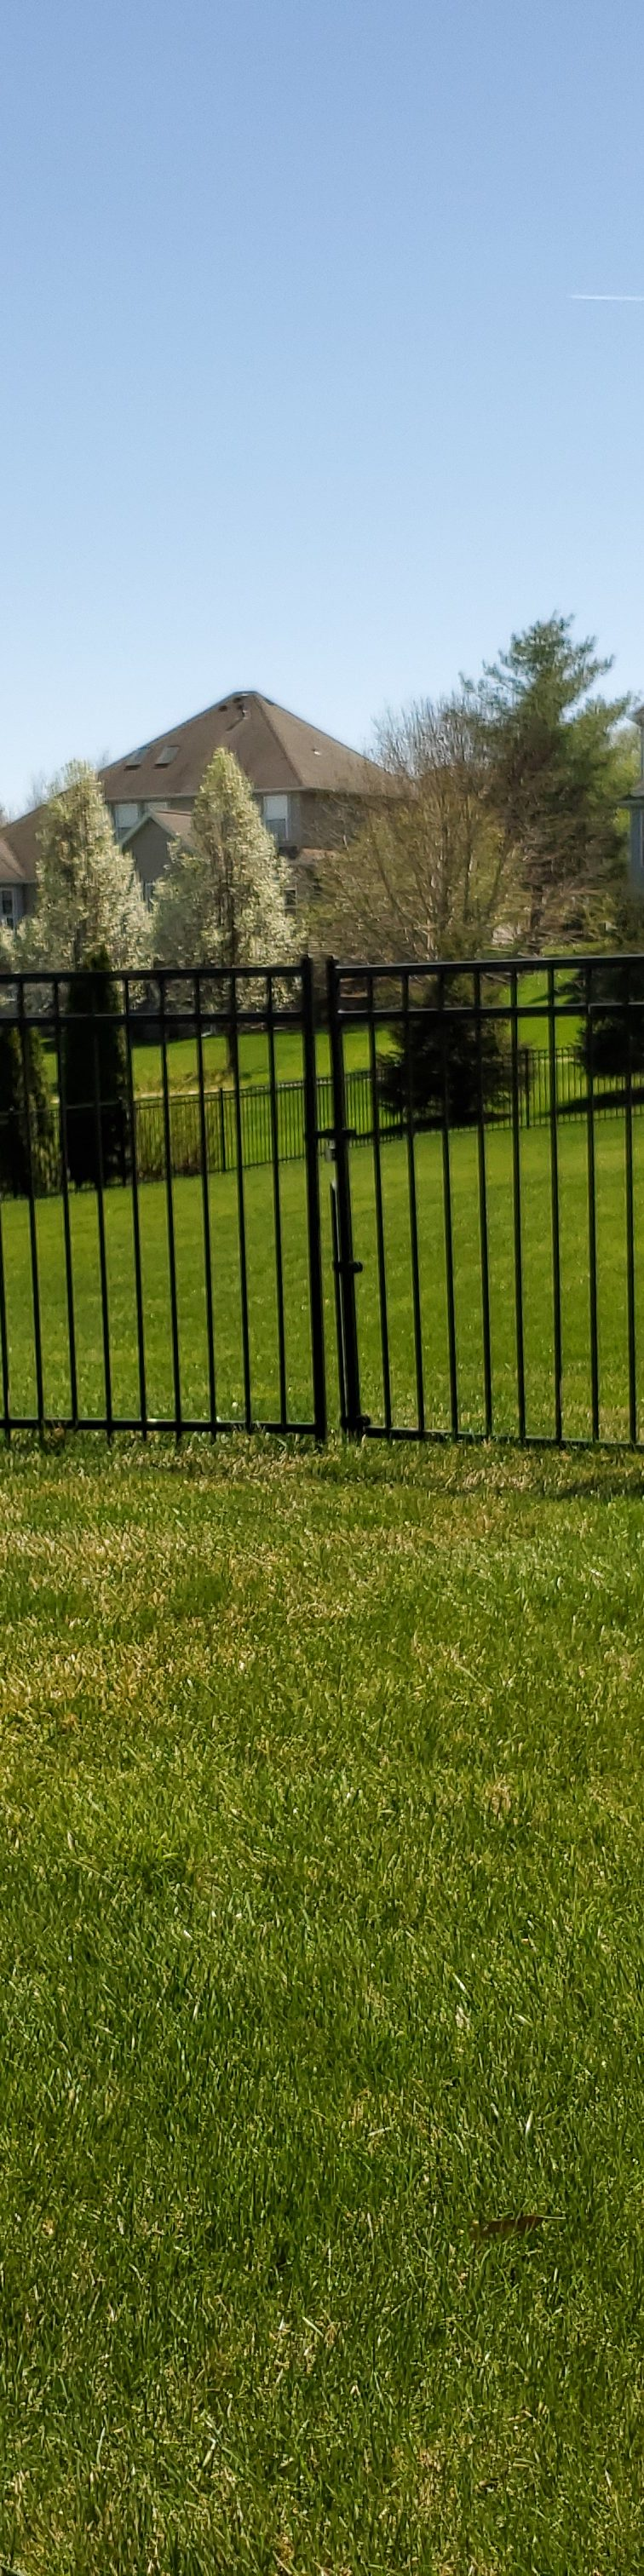 American Fence Company of Iowa City - 6' Wrought Iron Fence